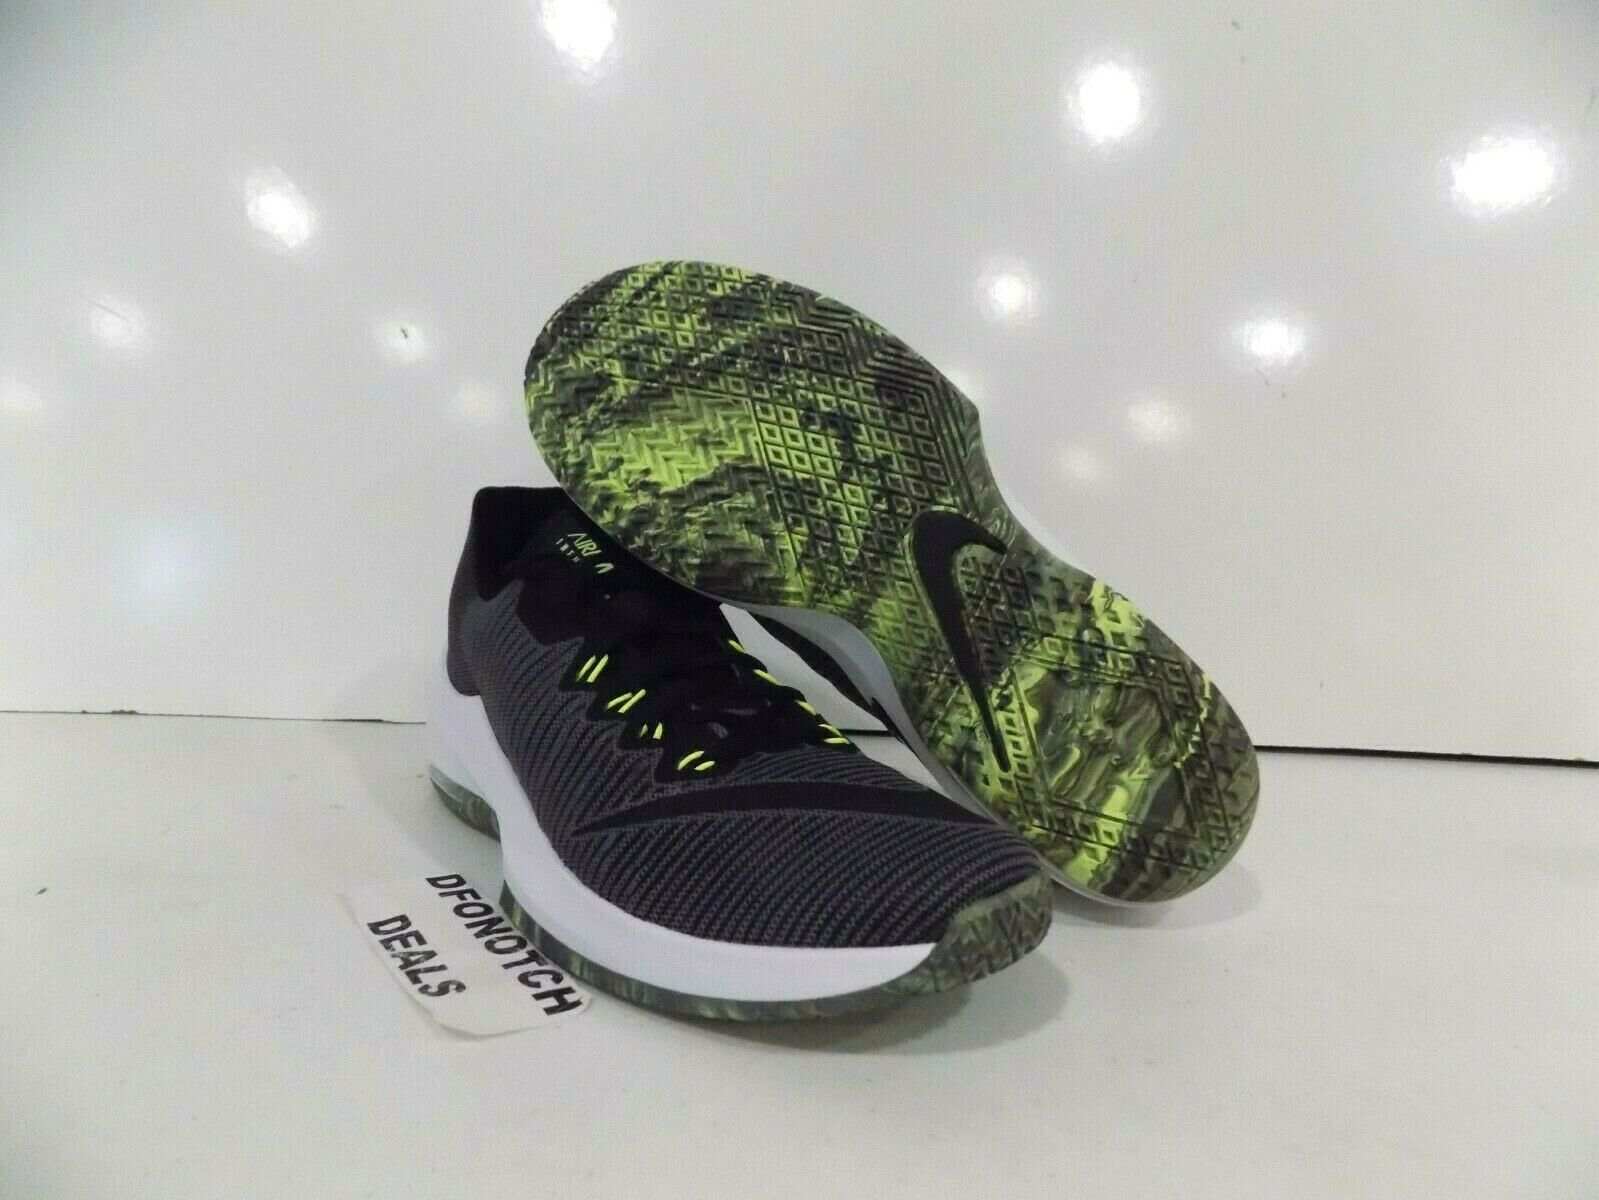 d777af4ae06 Nike Air Max Infuriate 2 Low Men's Basketball shoes Sz 11 Grey Volt 908975  007 ncfary3652-Athletic Shoes